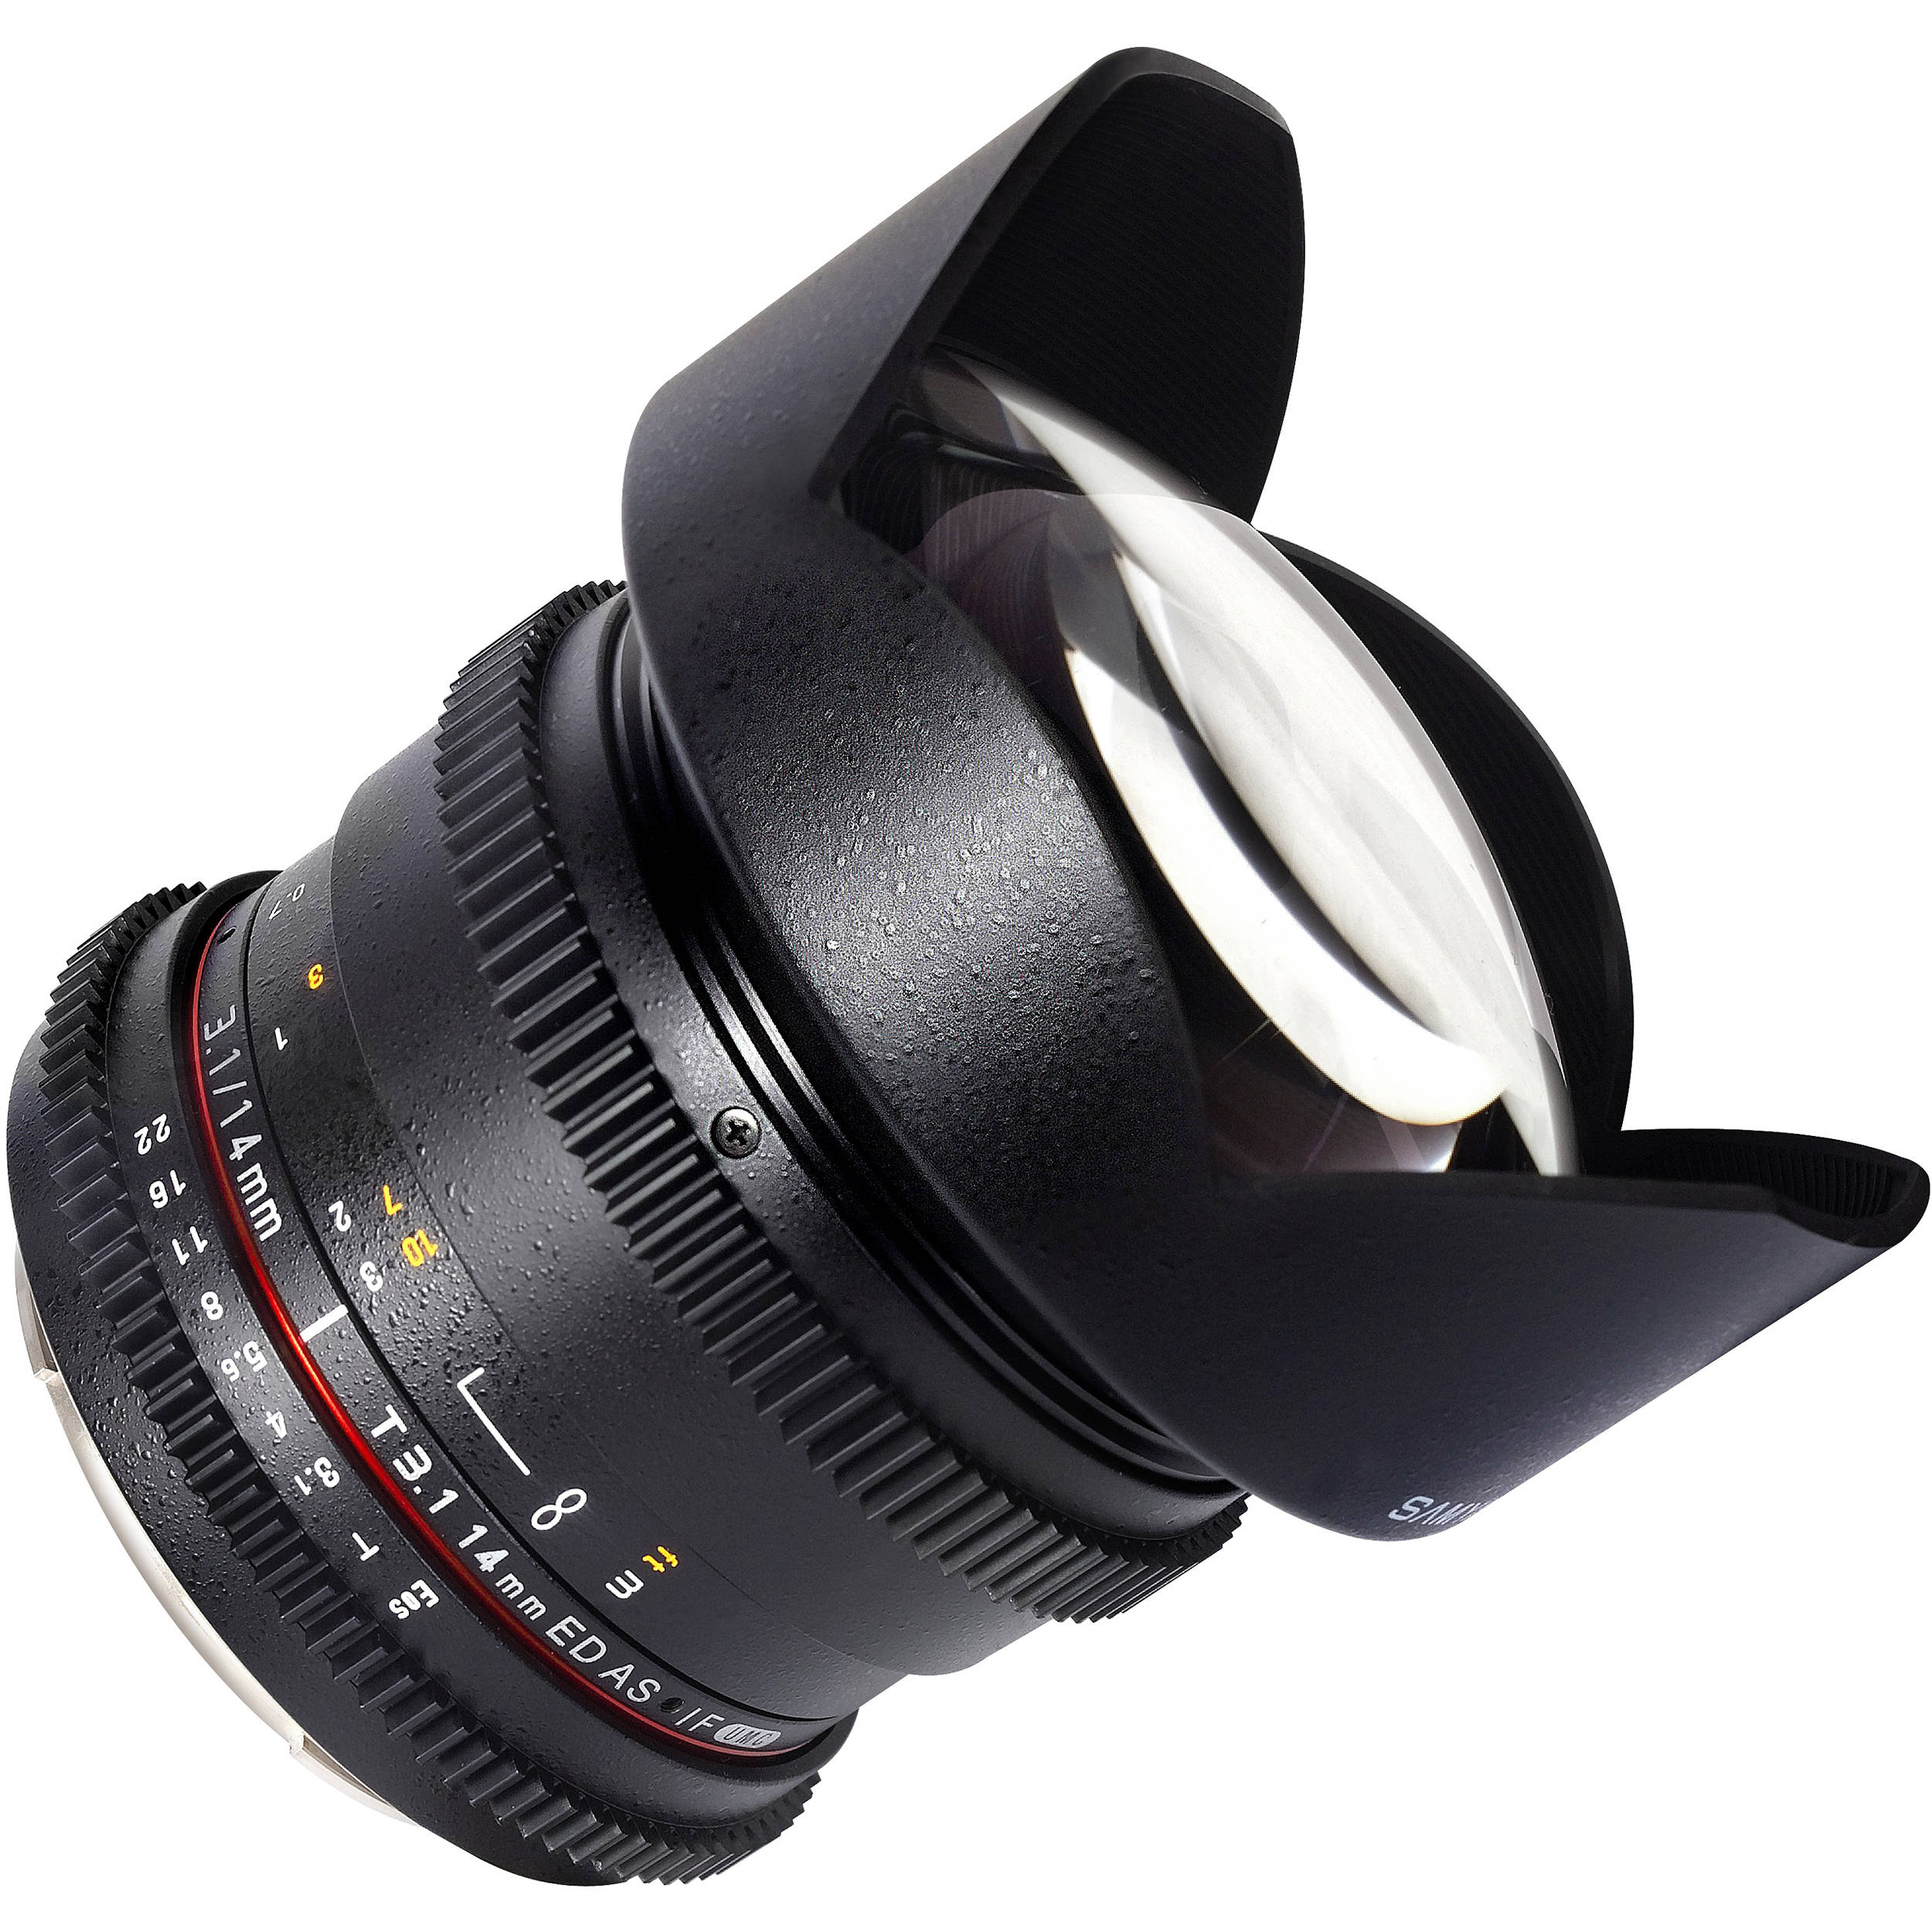 Sony E-mount Lens Hire for Rent - Camera Hire Sydney Australia